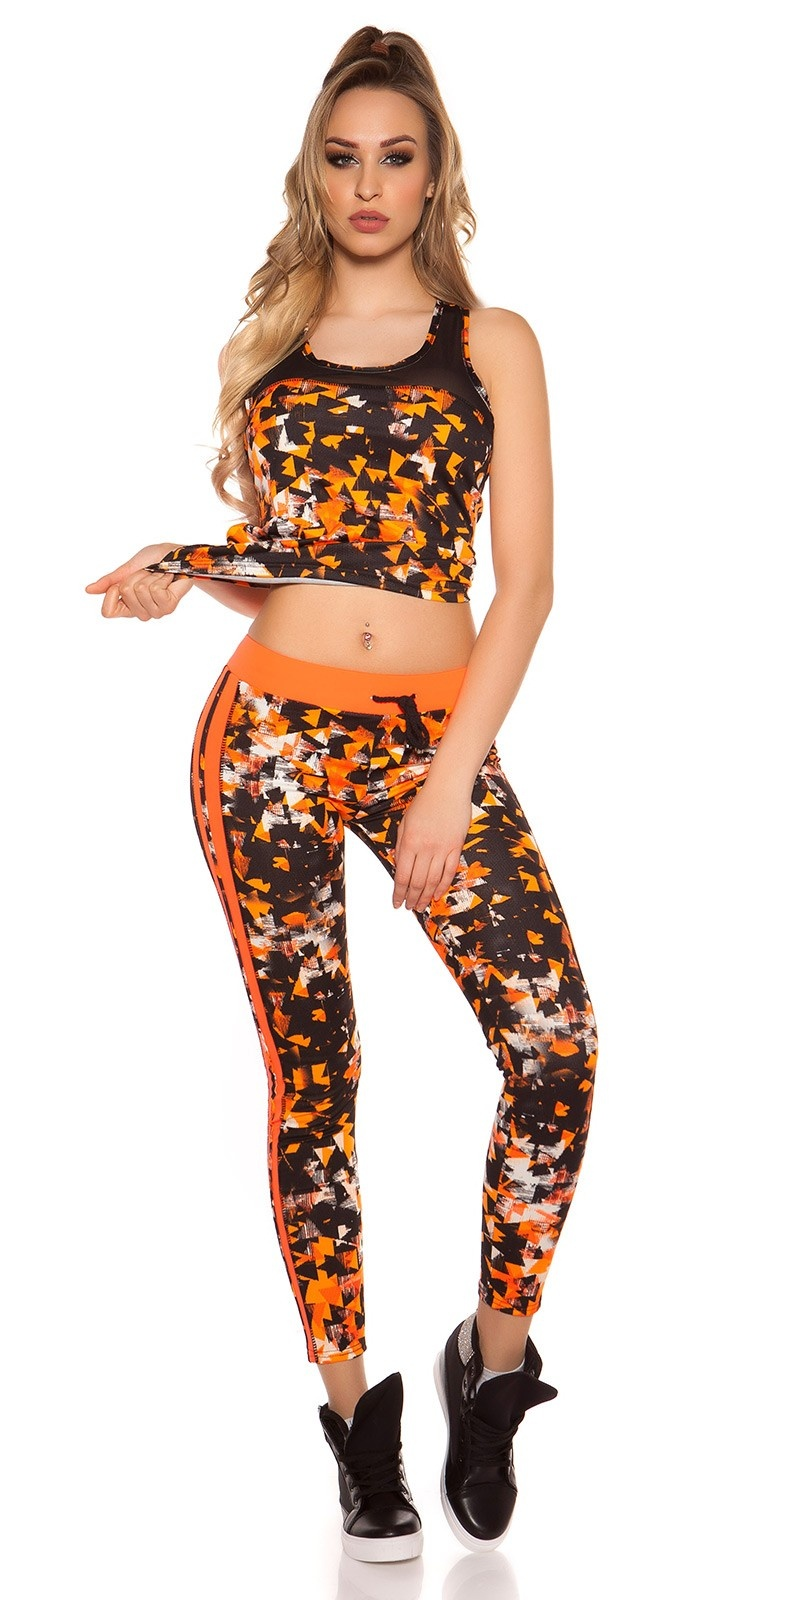 Trendy Workout Outfit With Top & Leggings Neonorange